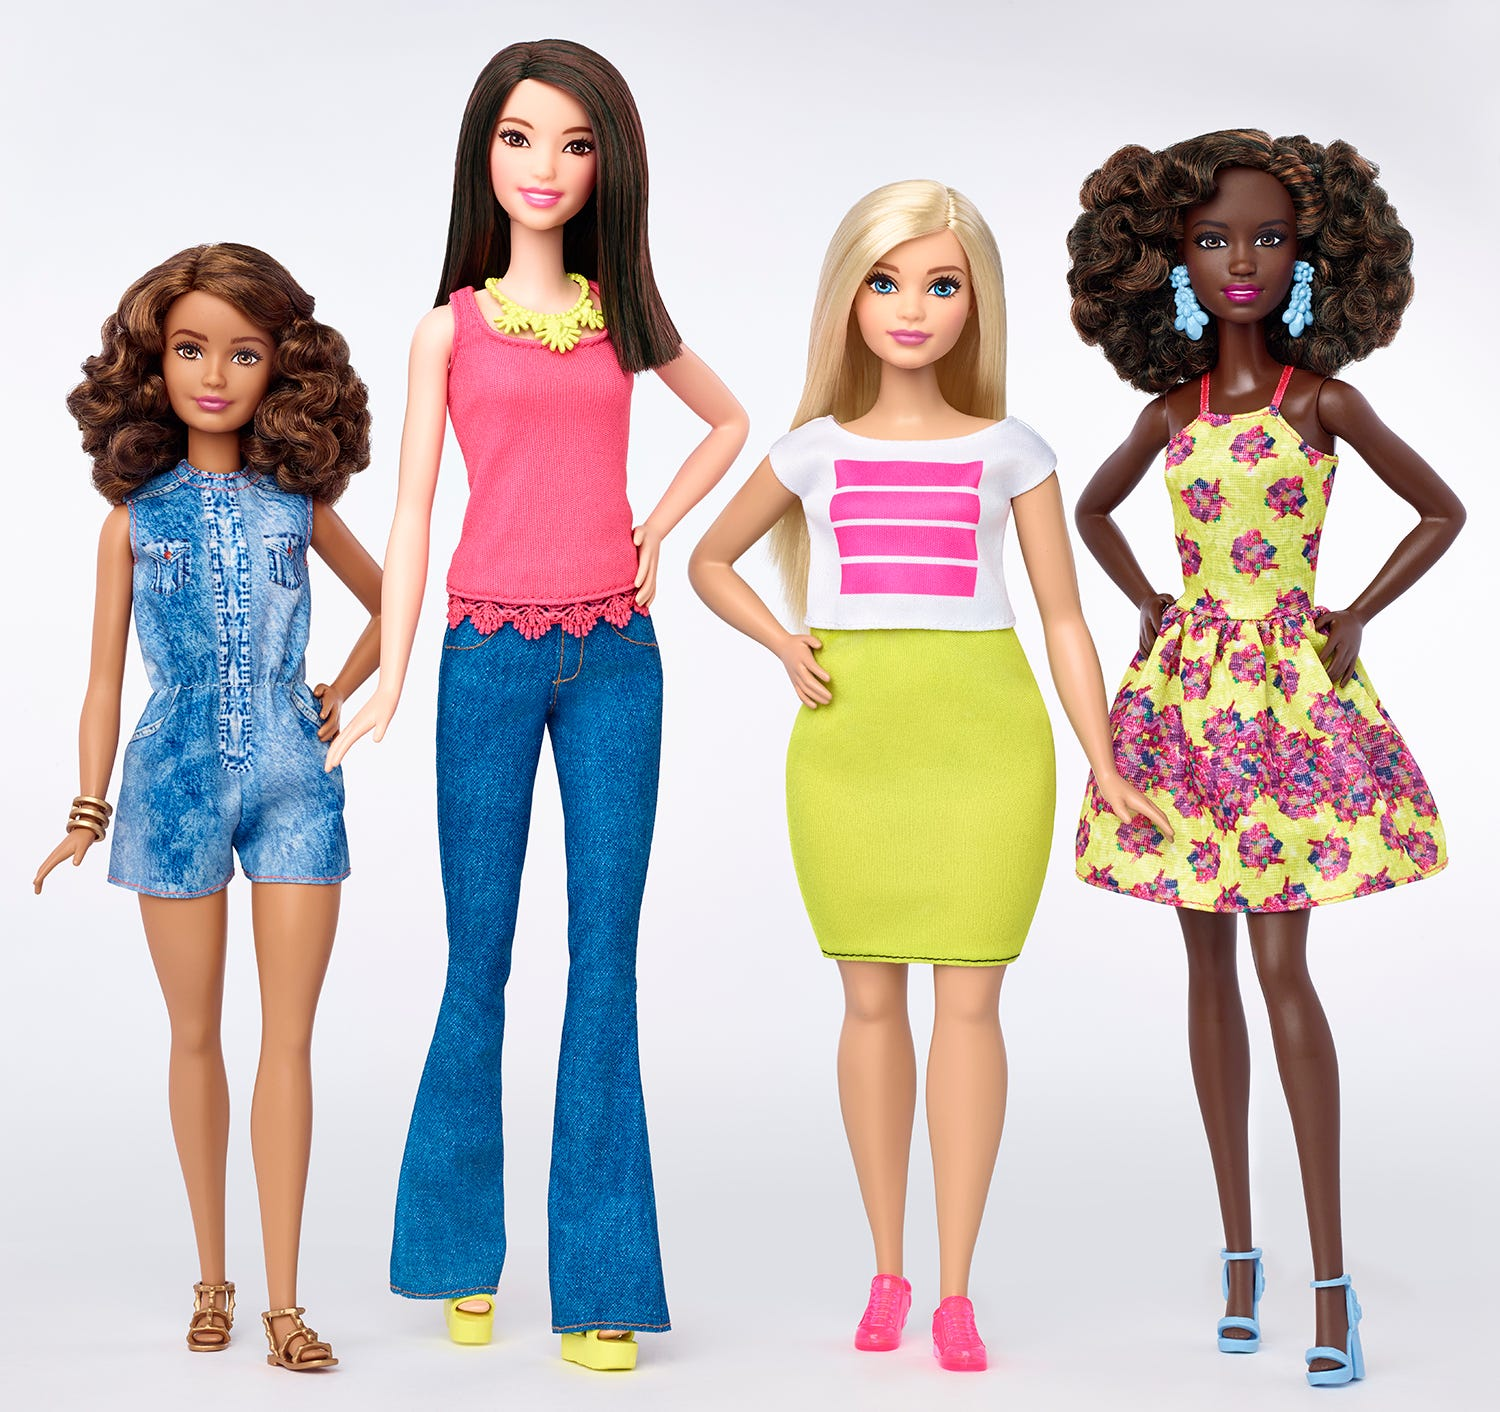 Barbie's New Body: Tall, Petite, andCurvy